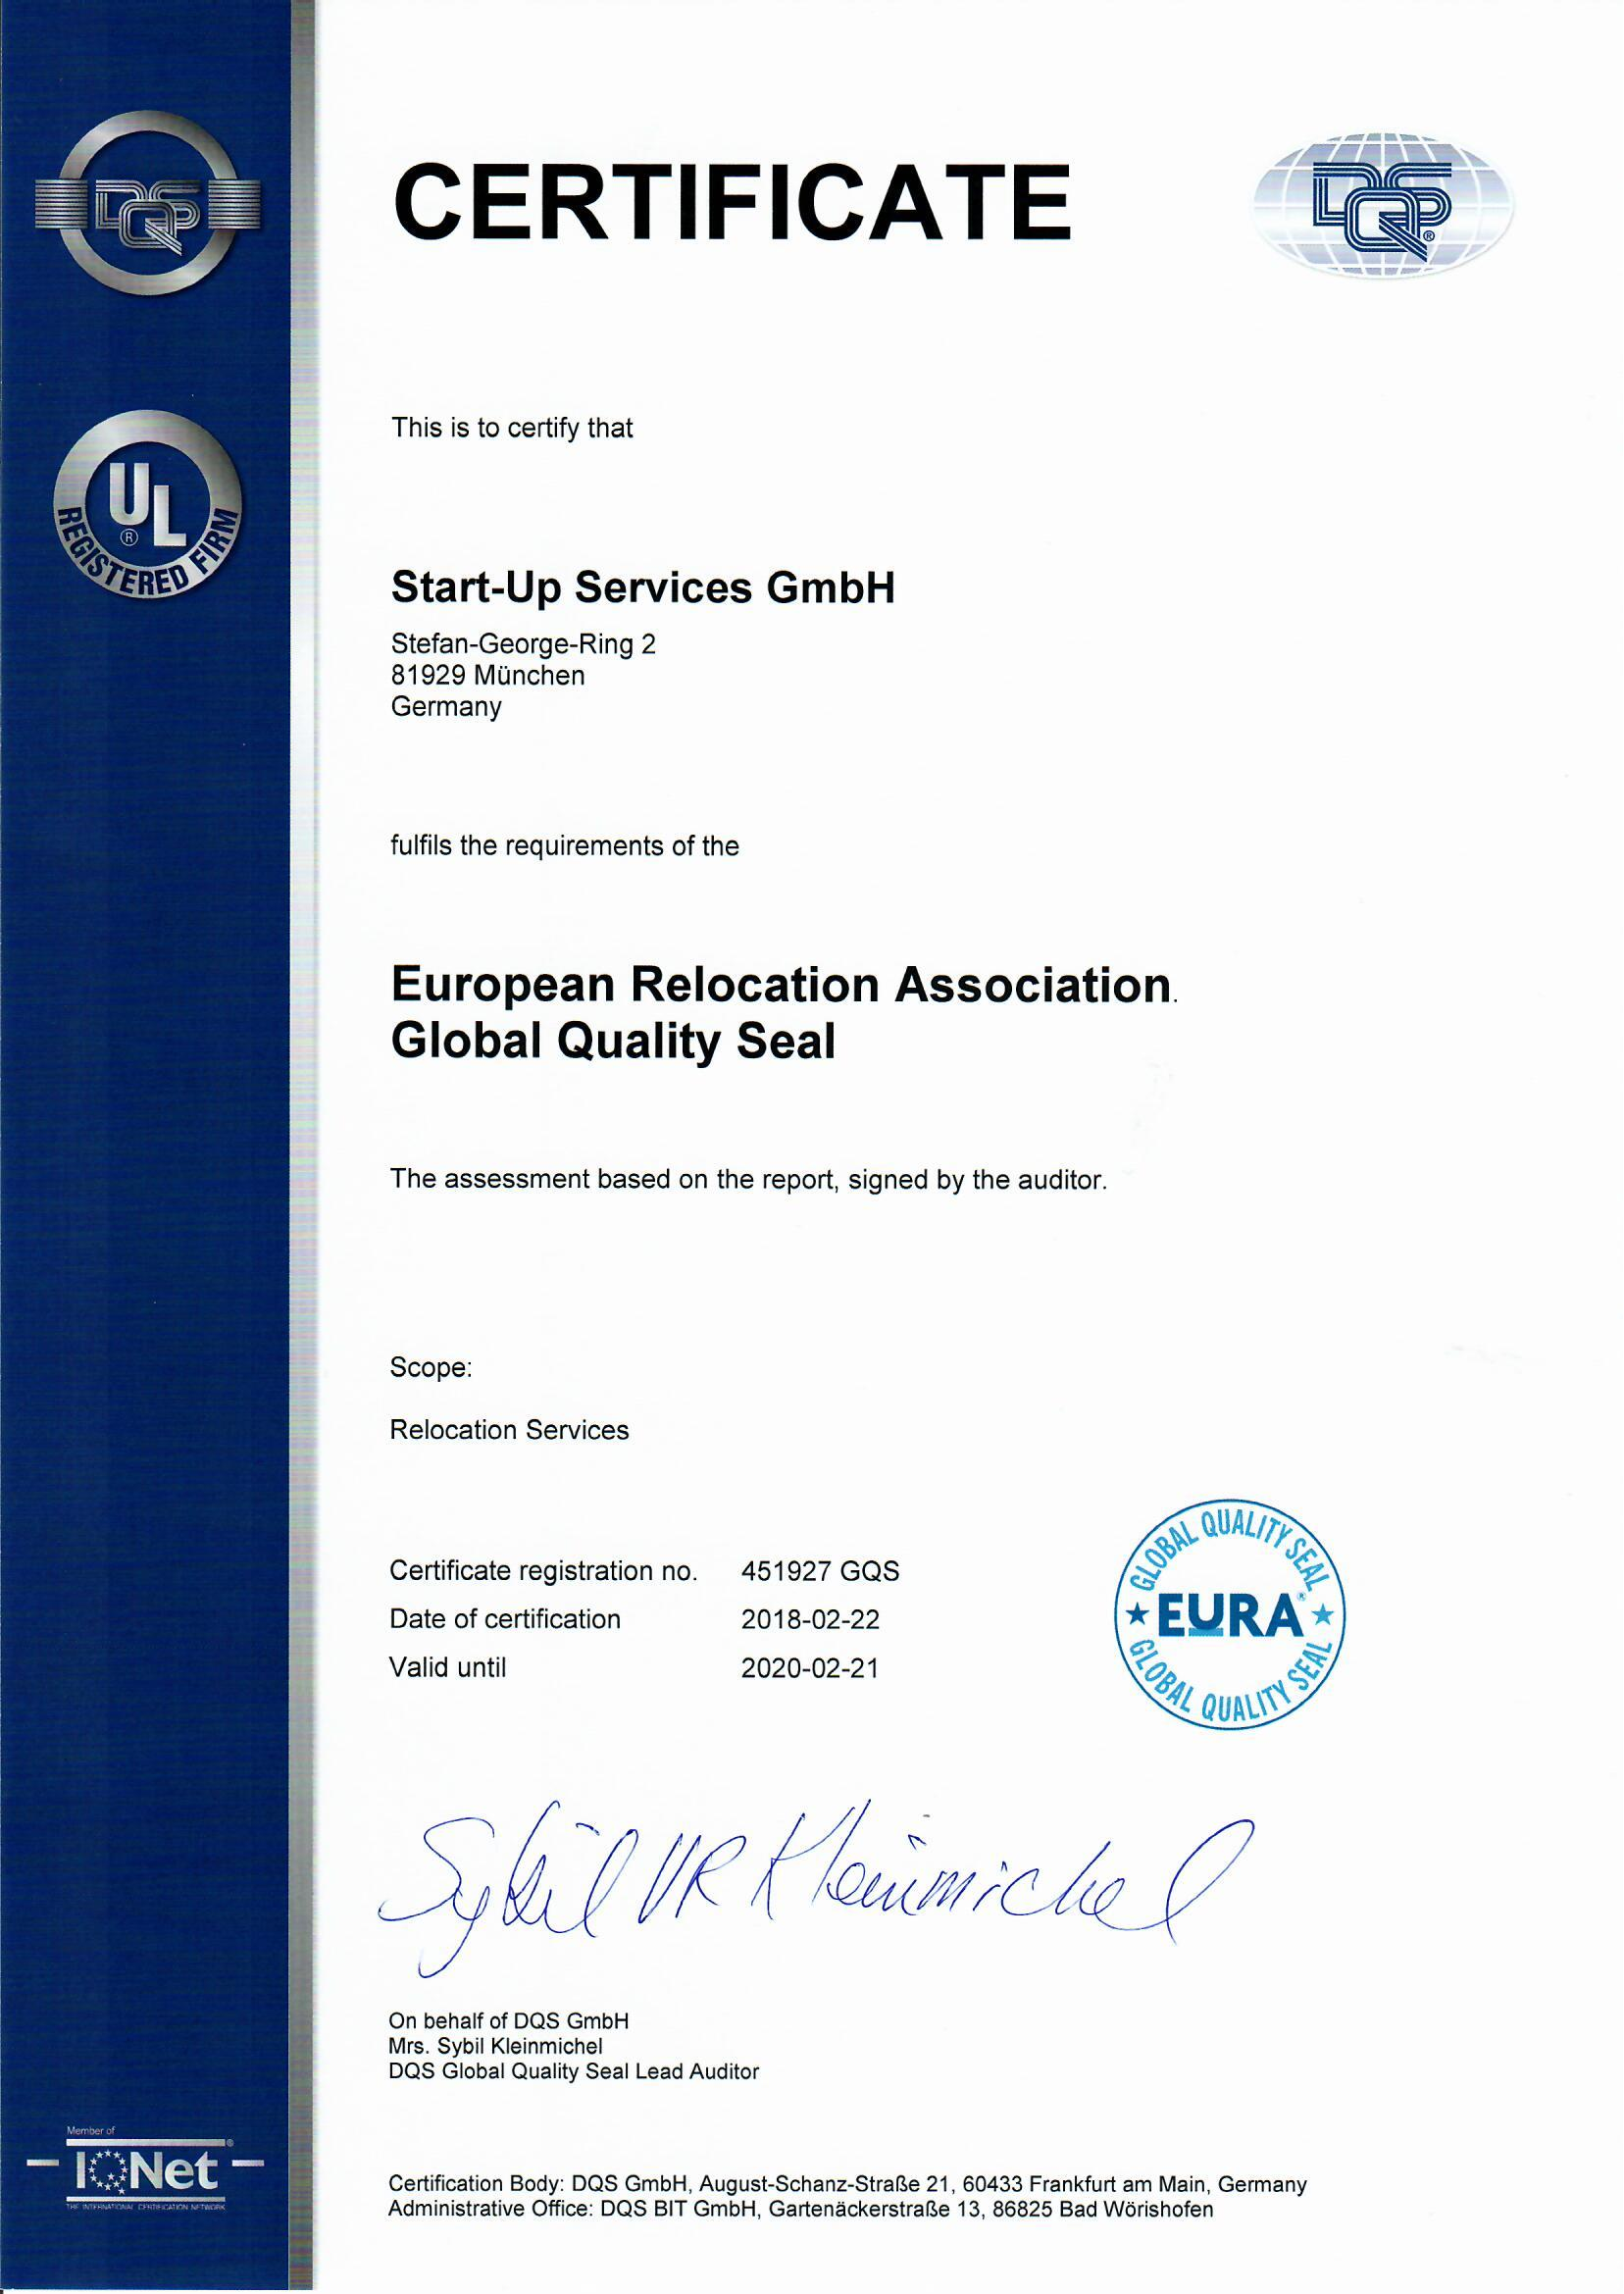 EURA Global Quality Seal Start-Up Services